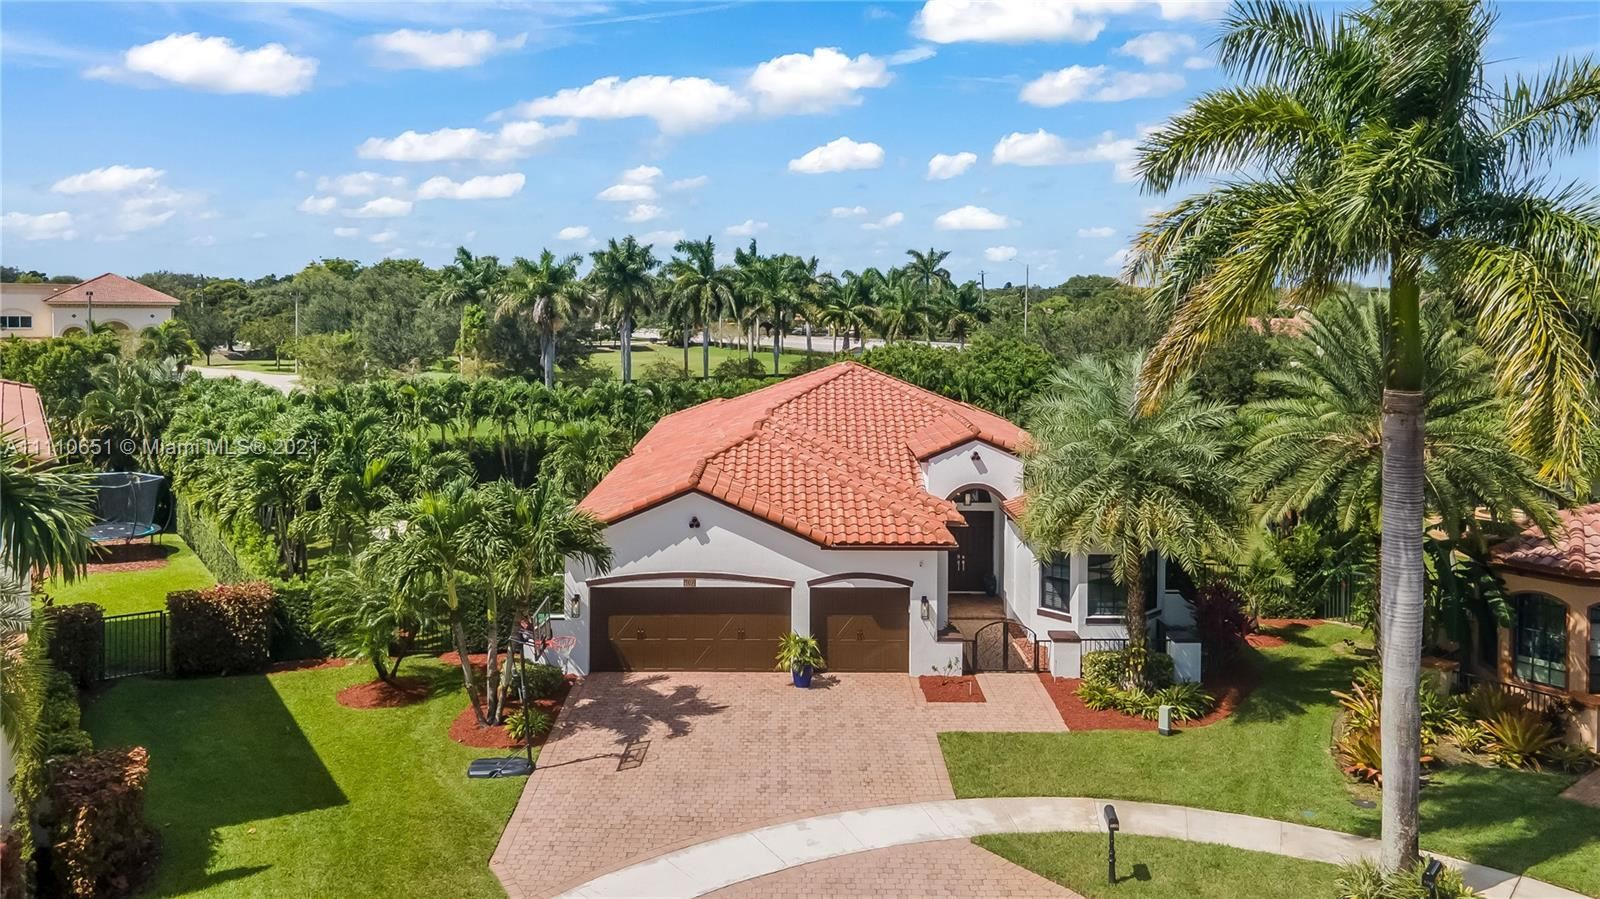 Photo of 4092 NW 88th Ter, Cooper City, FL 33024 (MLS # A11110651)